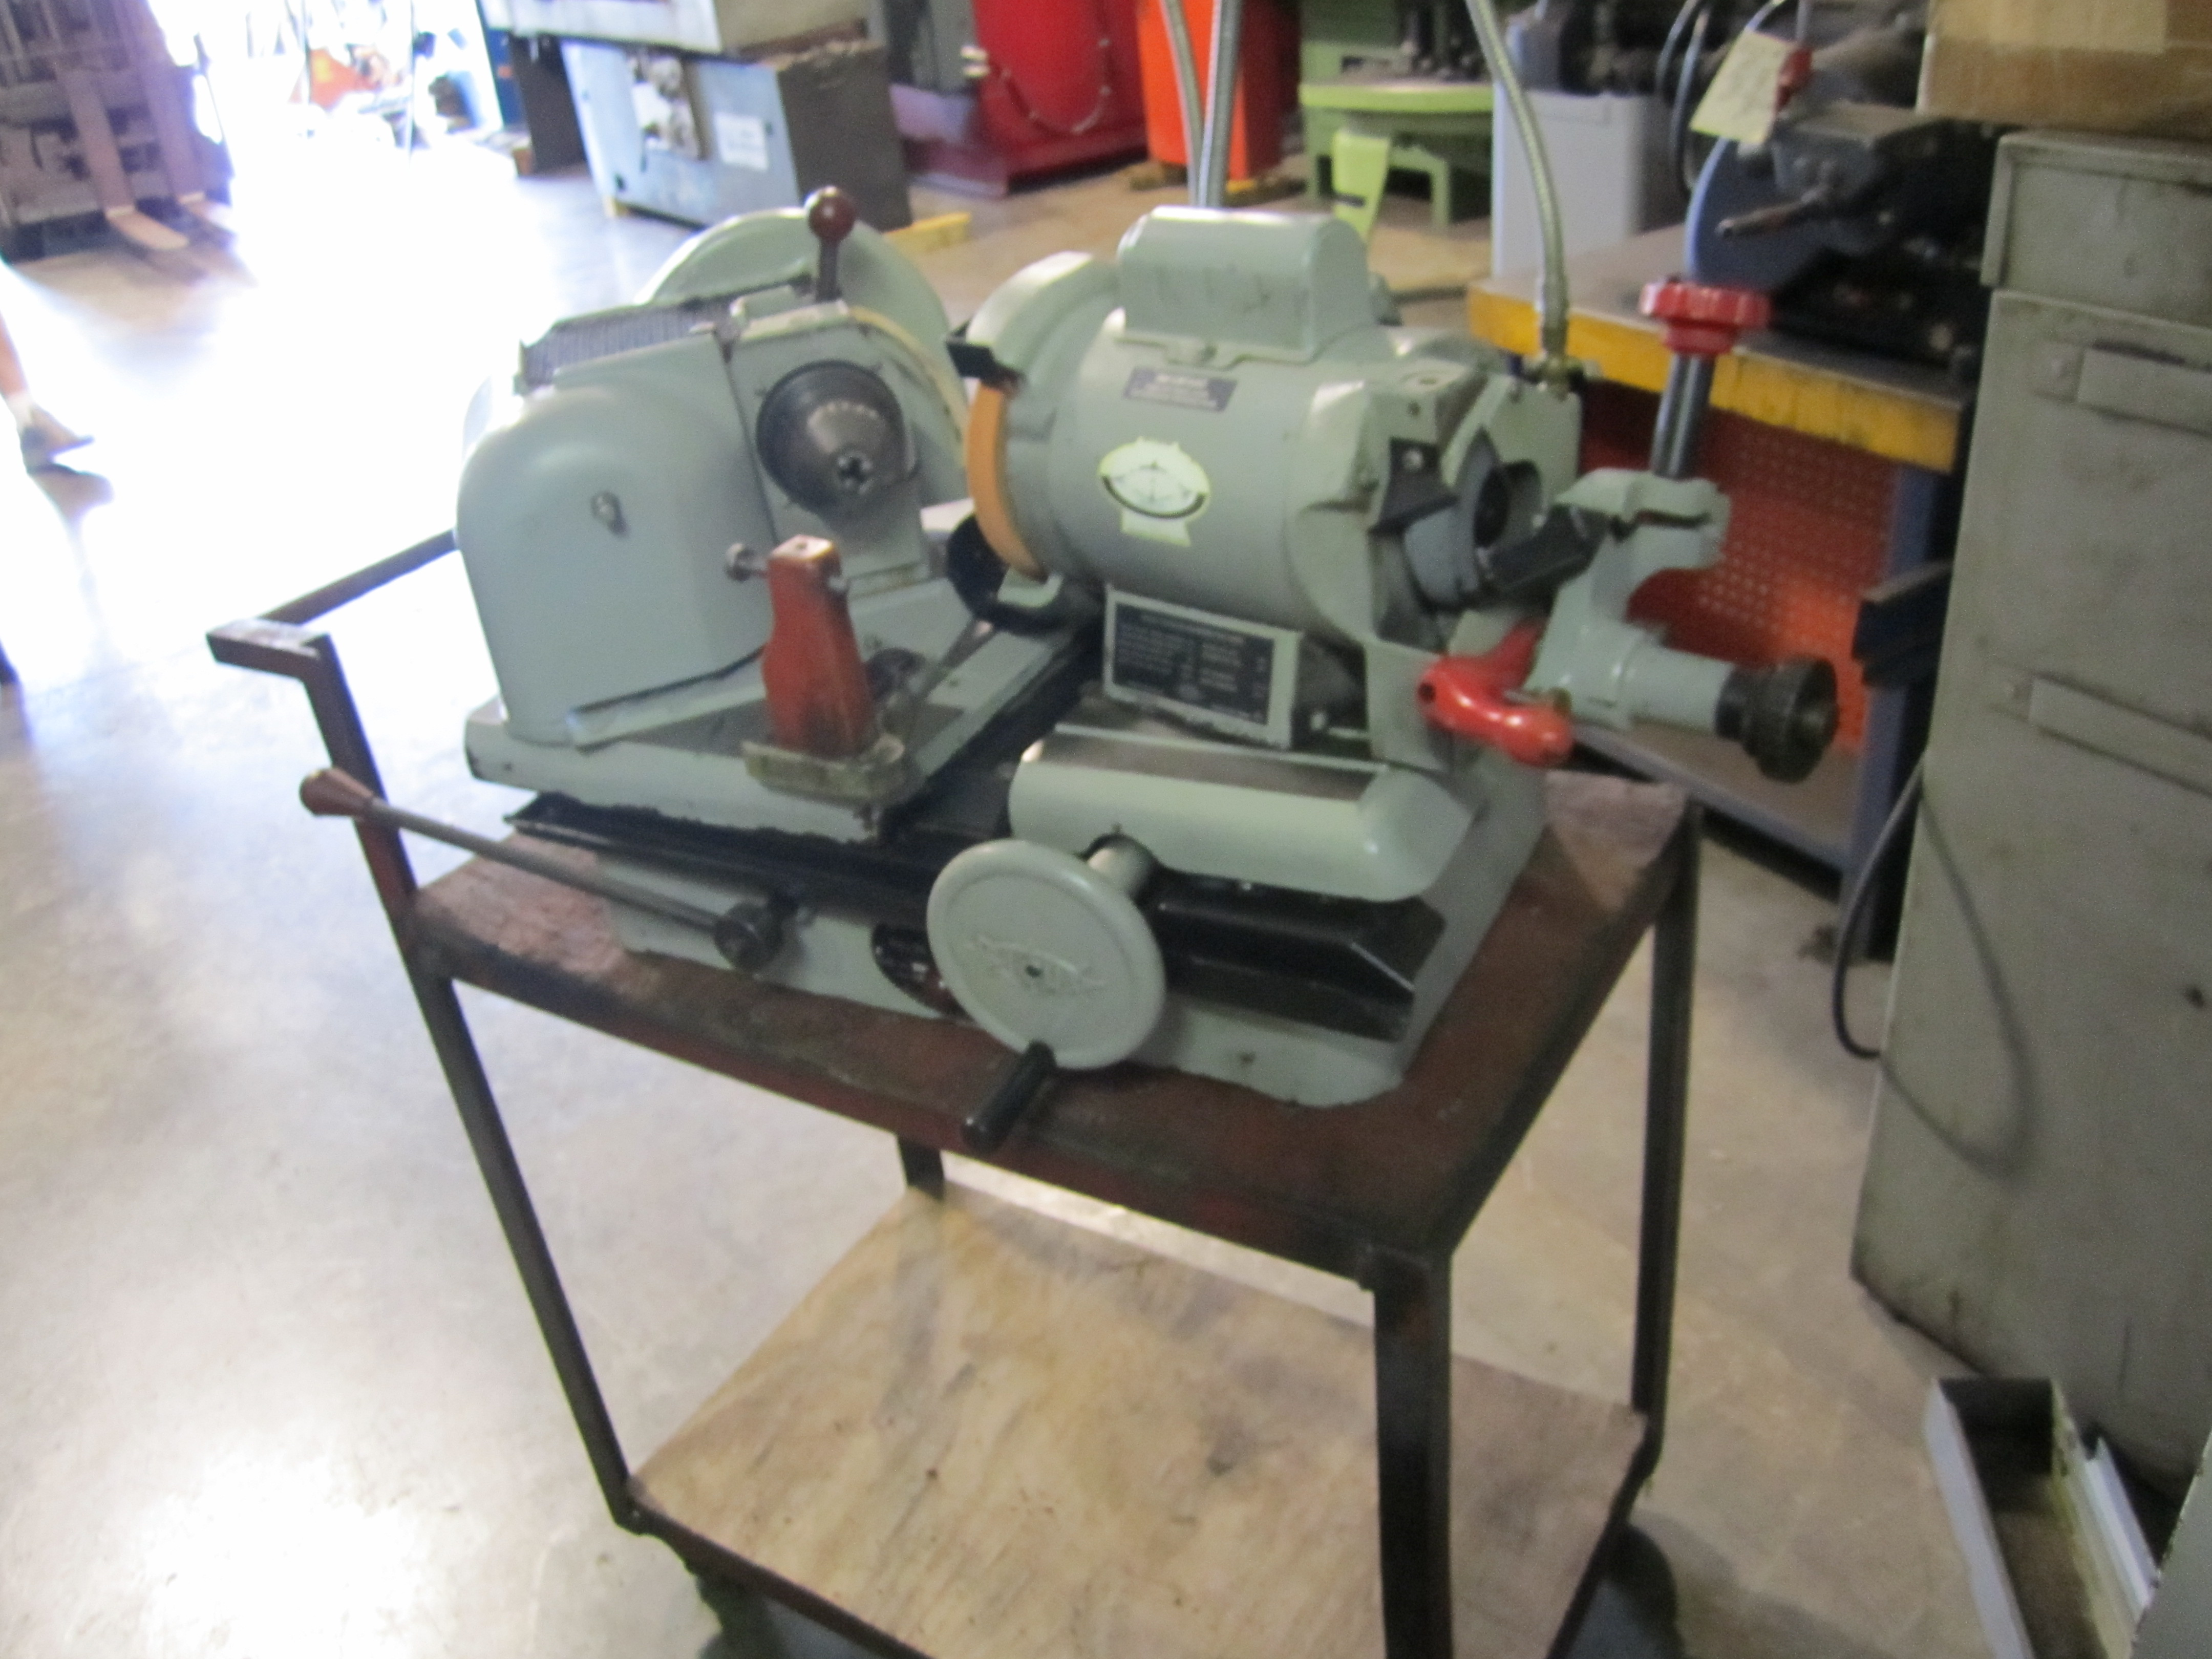 Price for Outboard motor machine shop